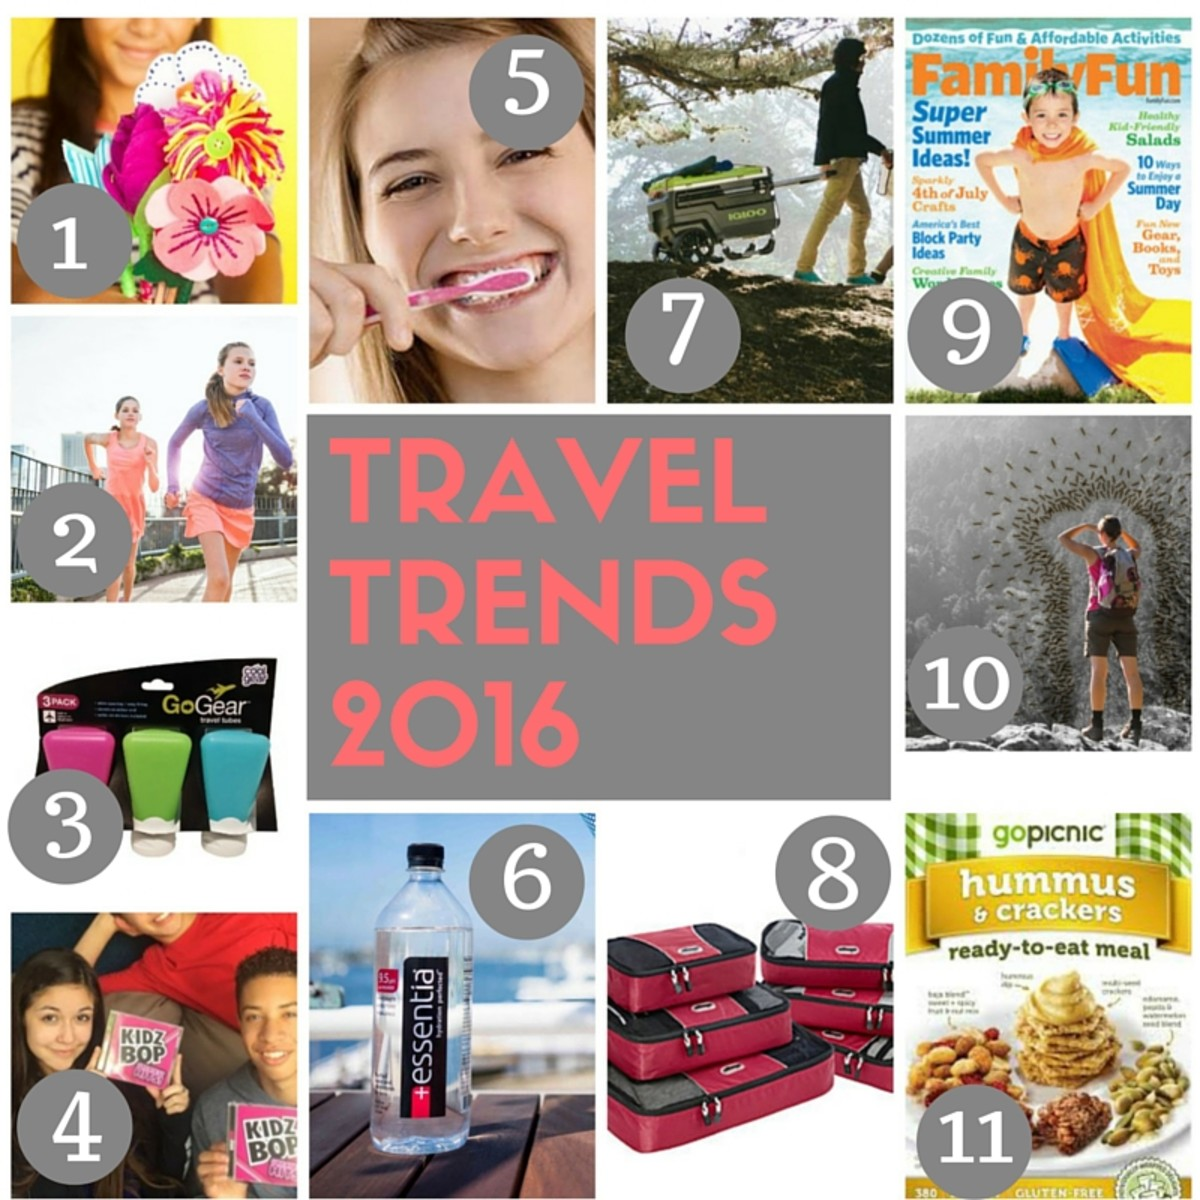 TRAVELTRENDS2016collage(1)